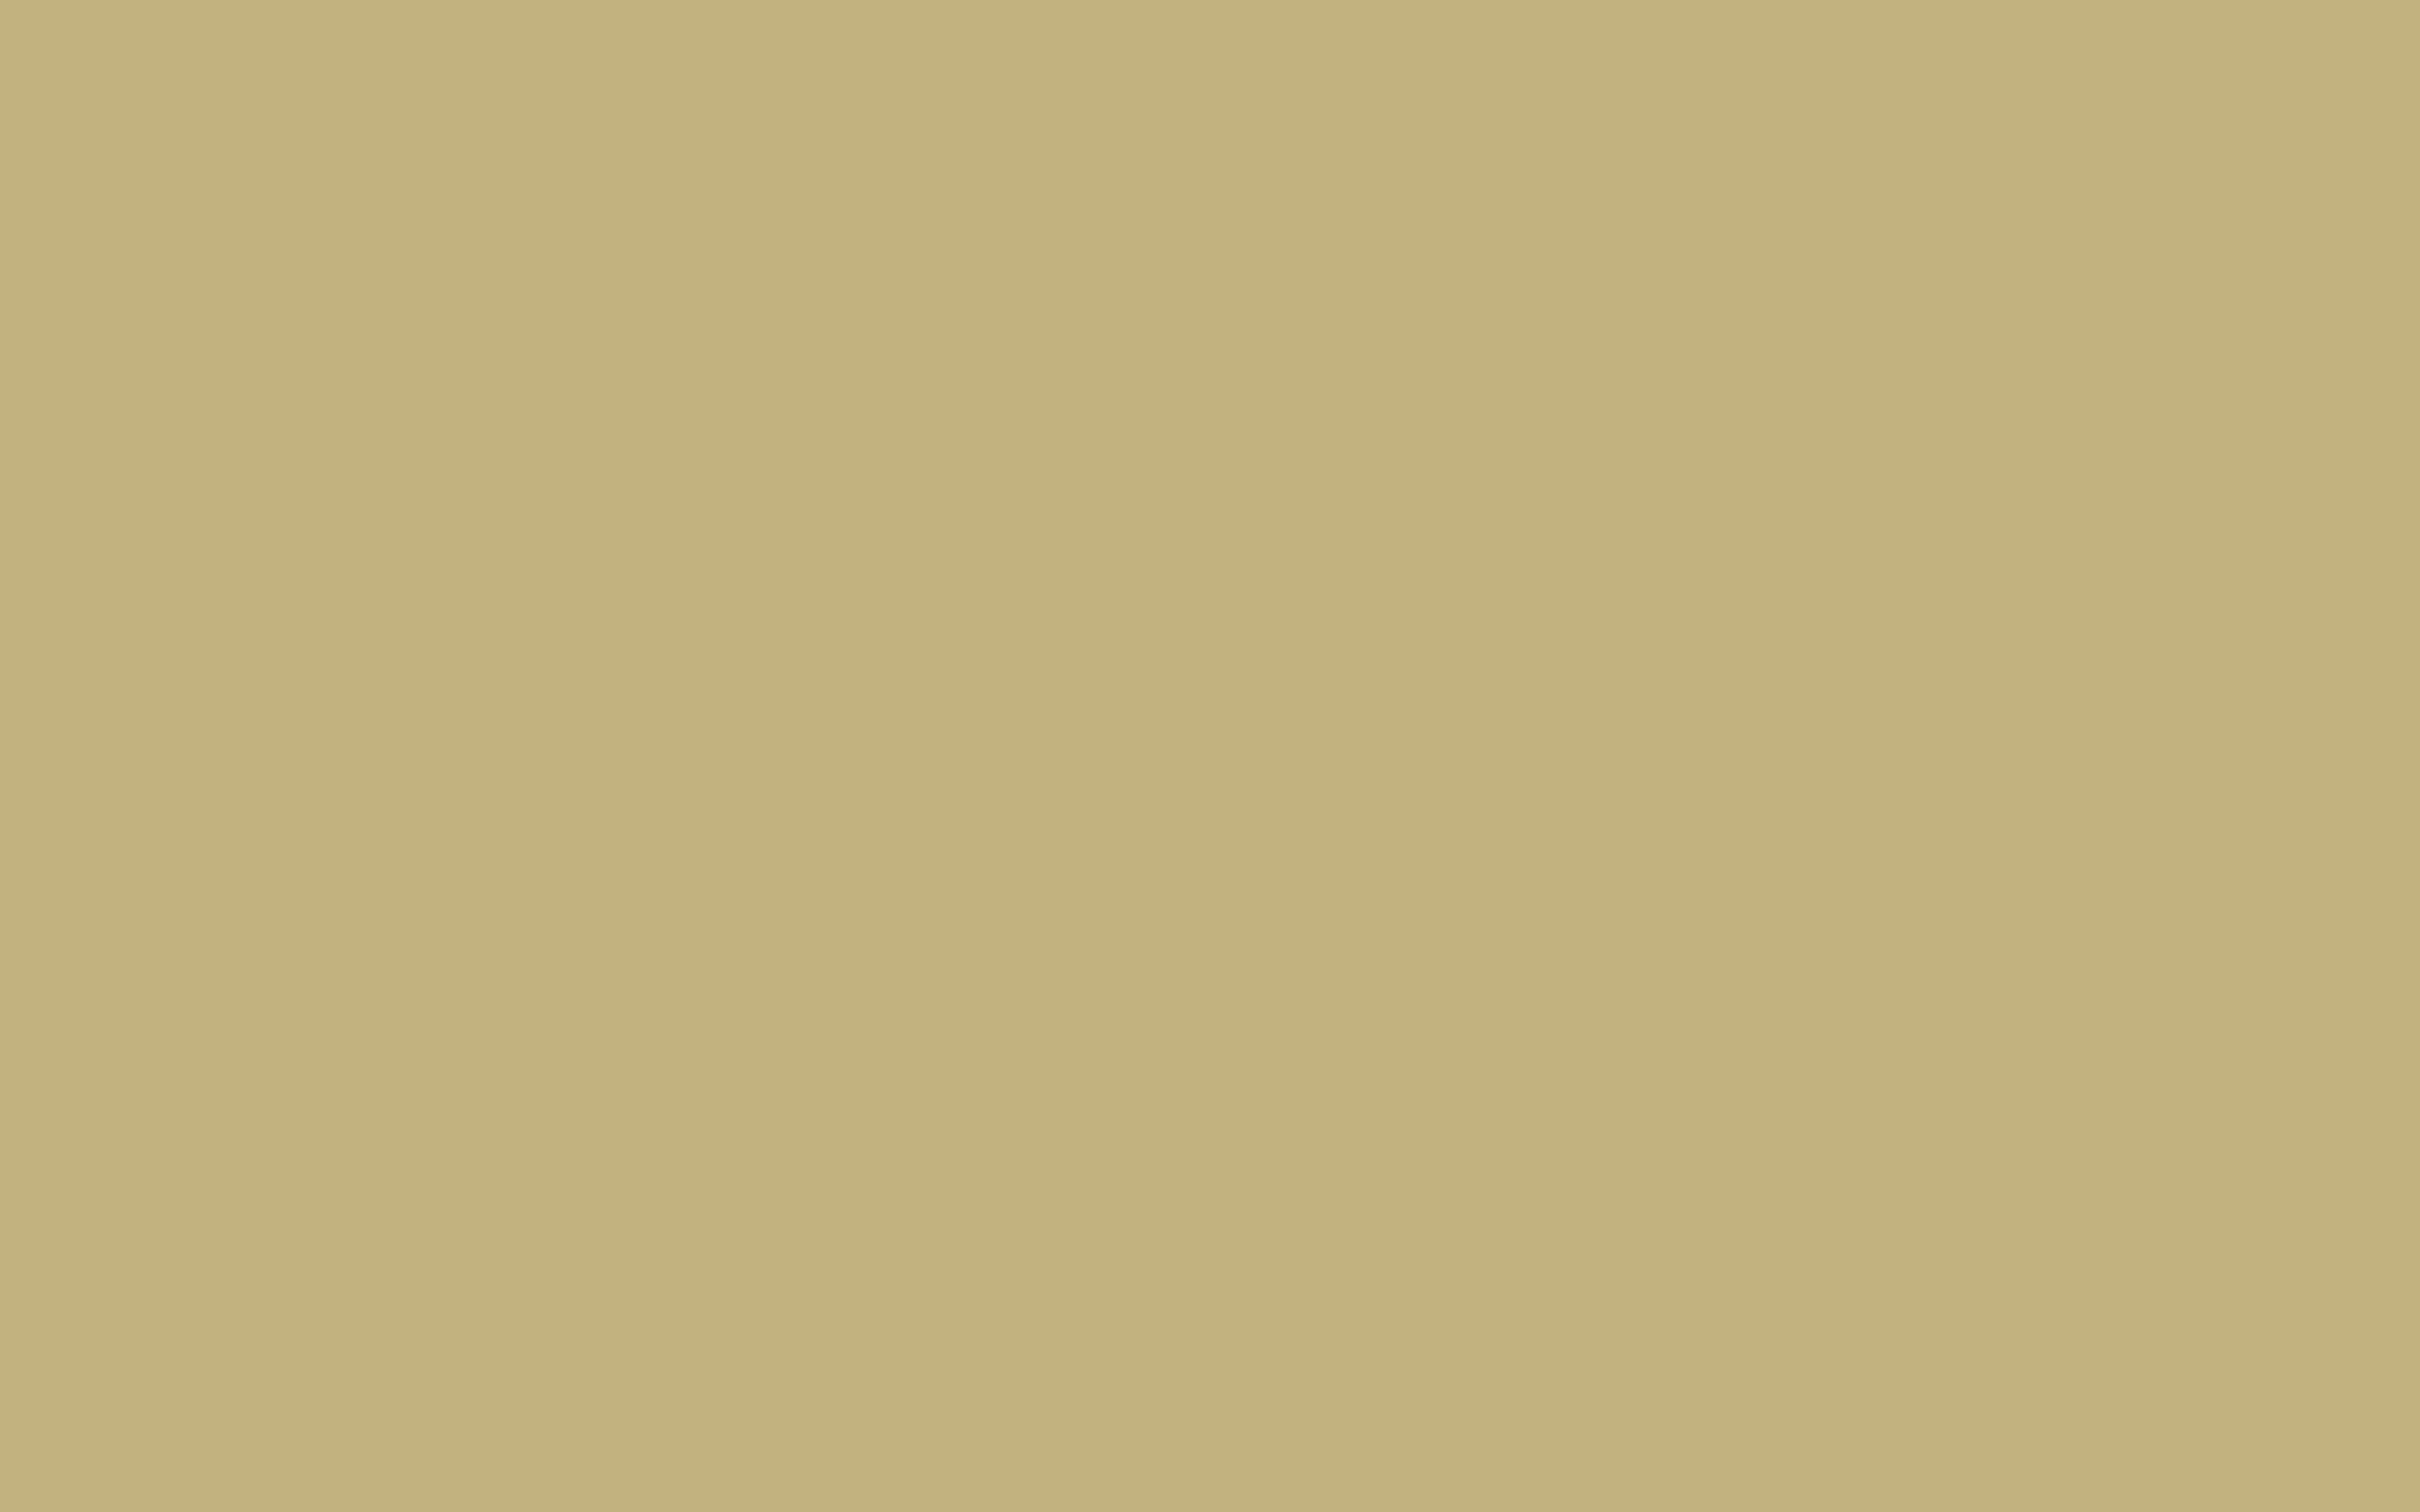 2560x1600 Sand Solid Color Background